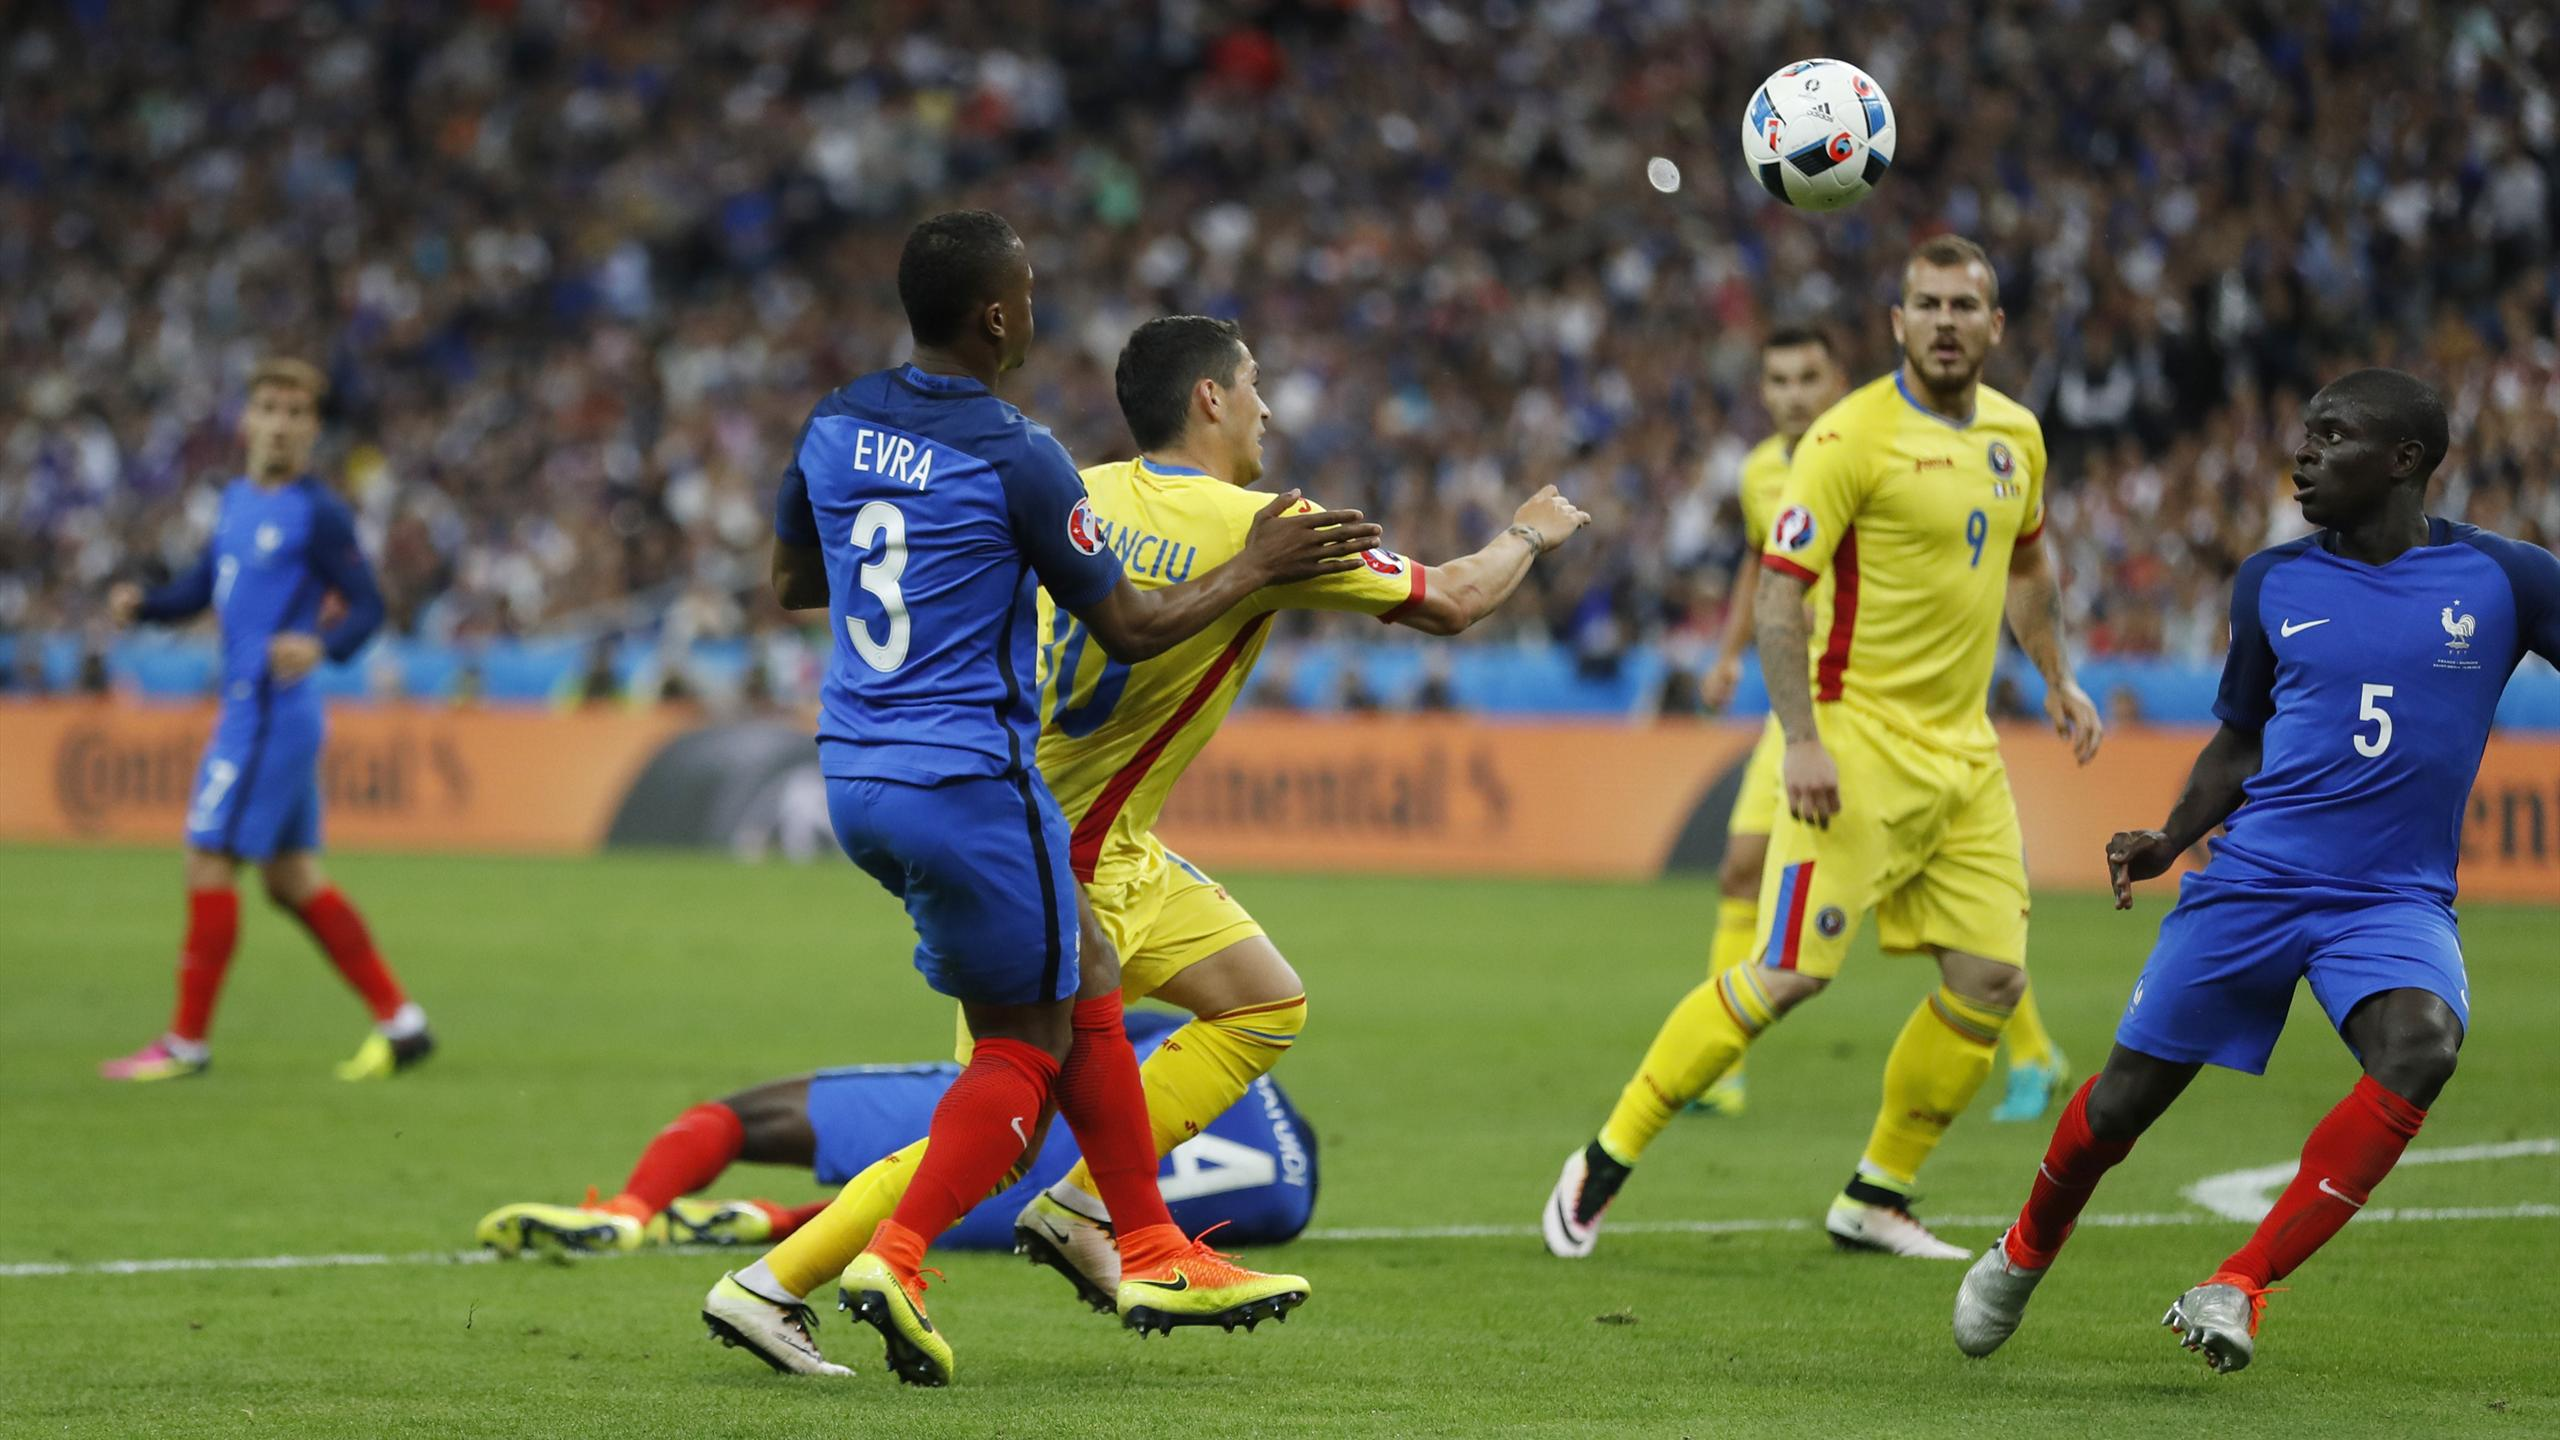 Romania's Nicolae Stanciu is fouled by France's Patrice Evra resulting in a penalty